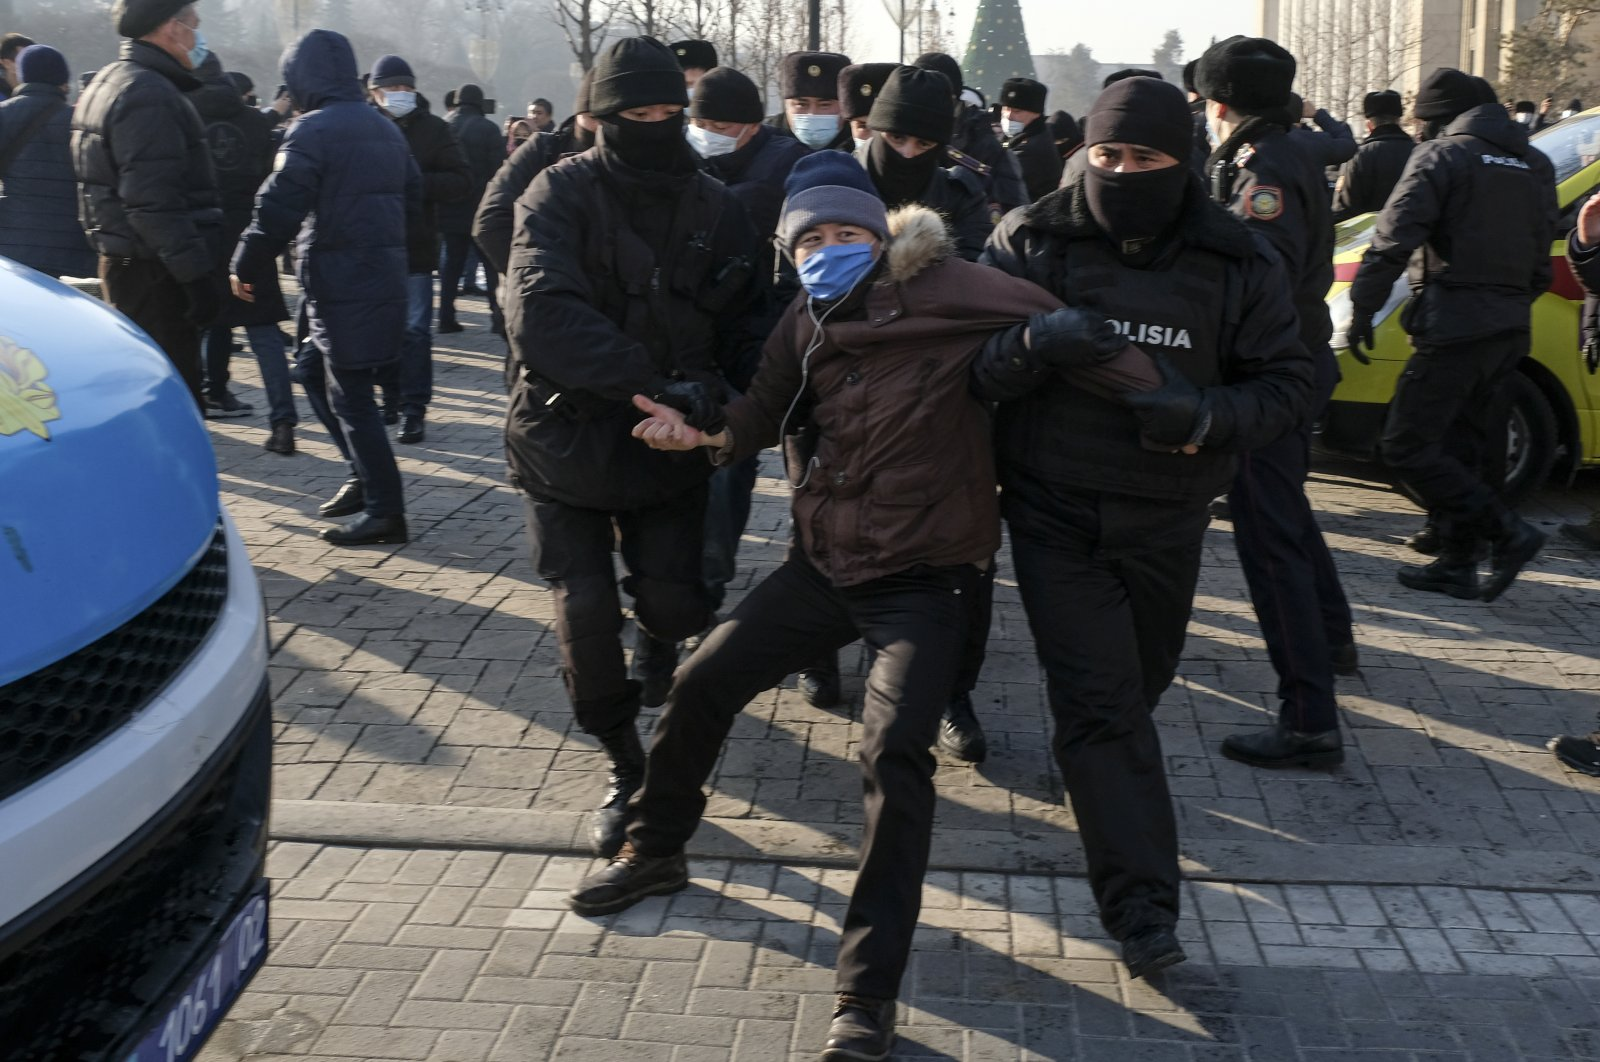 Kazakh police officers detain a protester during an opposition rally in Almaty, Kazakhstan, Sunday, Jan. 10, 2021 (AP Photo)